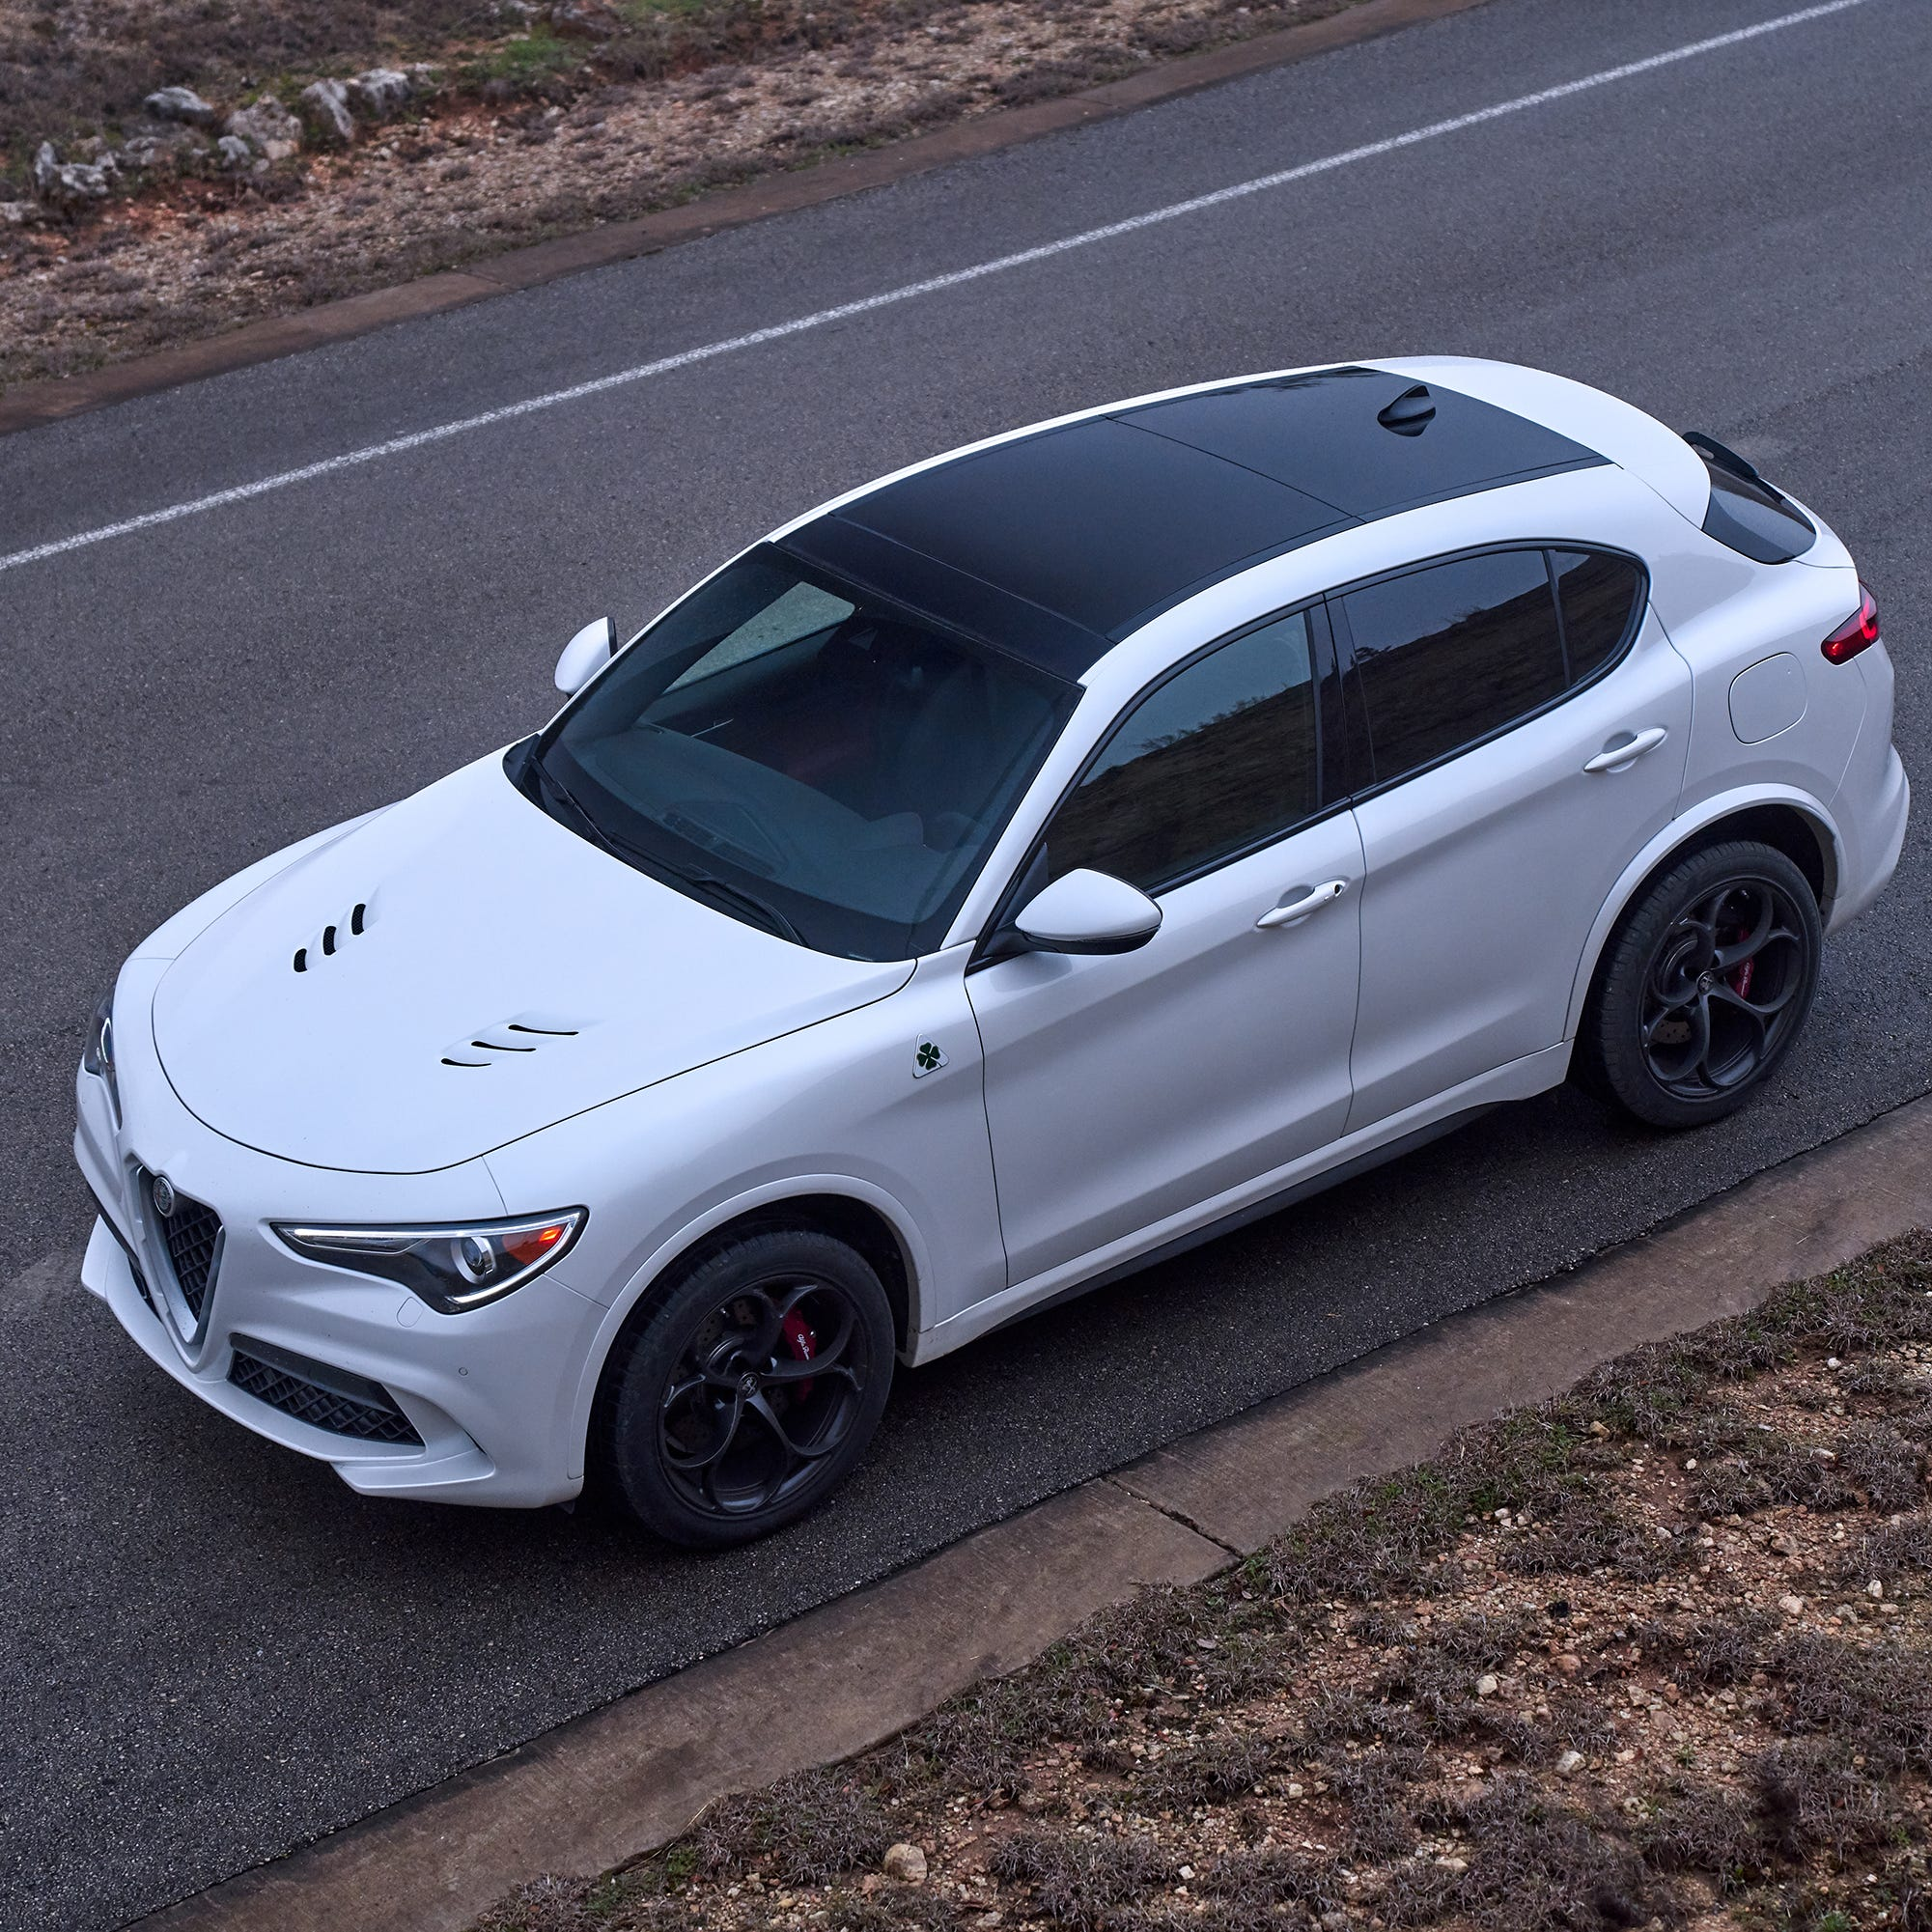 2019 Alfa Romeo Stelvio SUV doesn't look or feel like any other